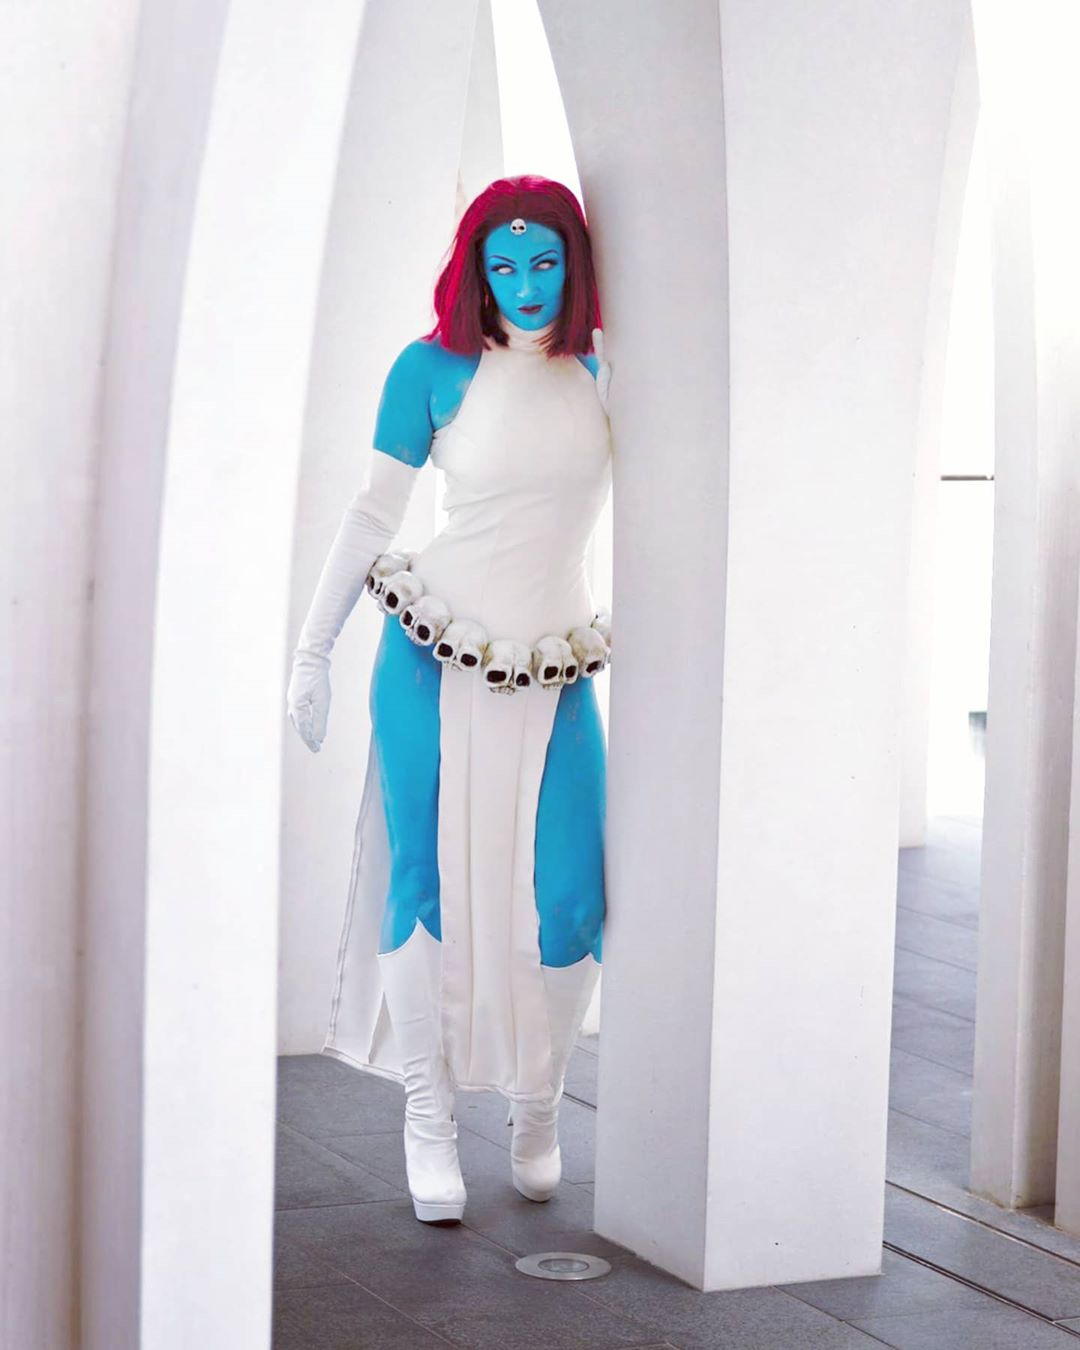 Mystique Cosplay by carastrophic_creates – photo by gapincyberspace